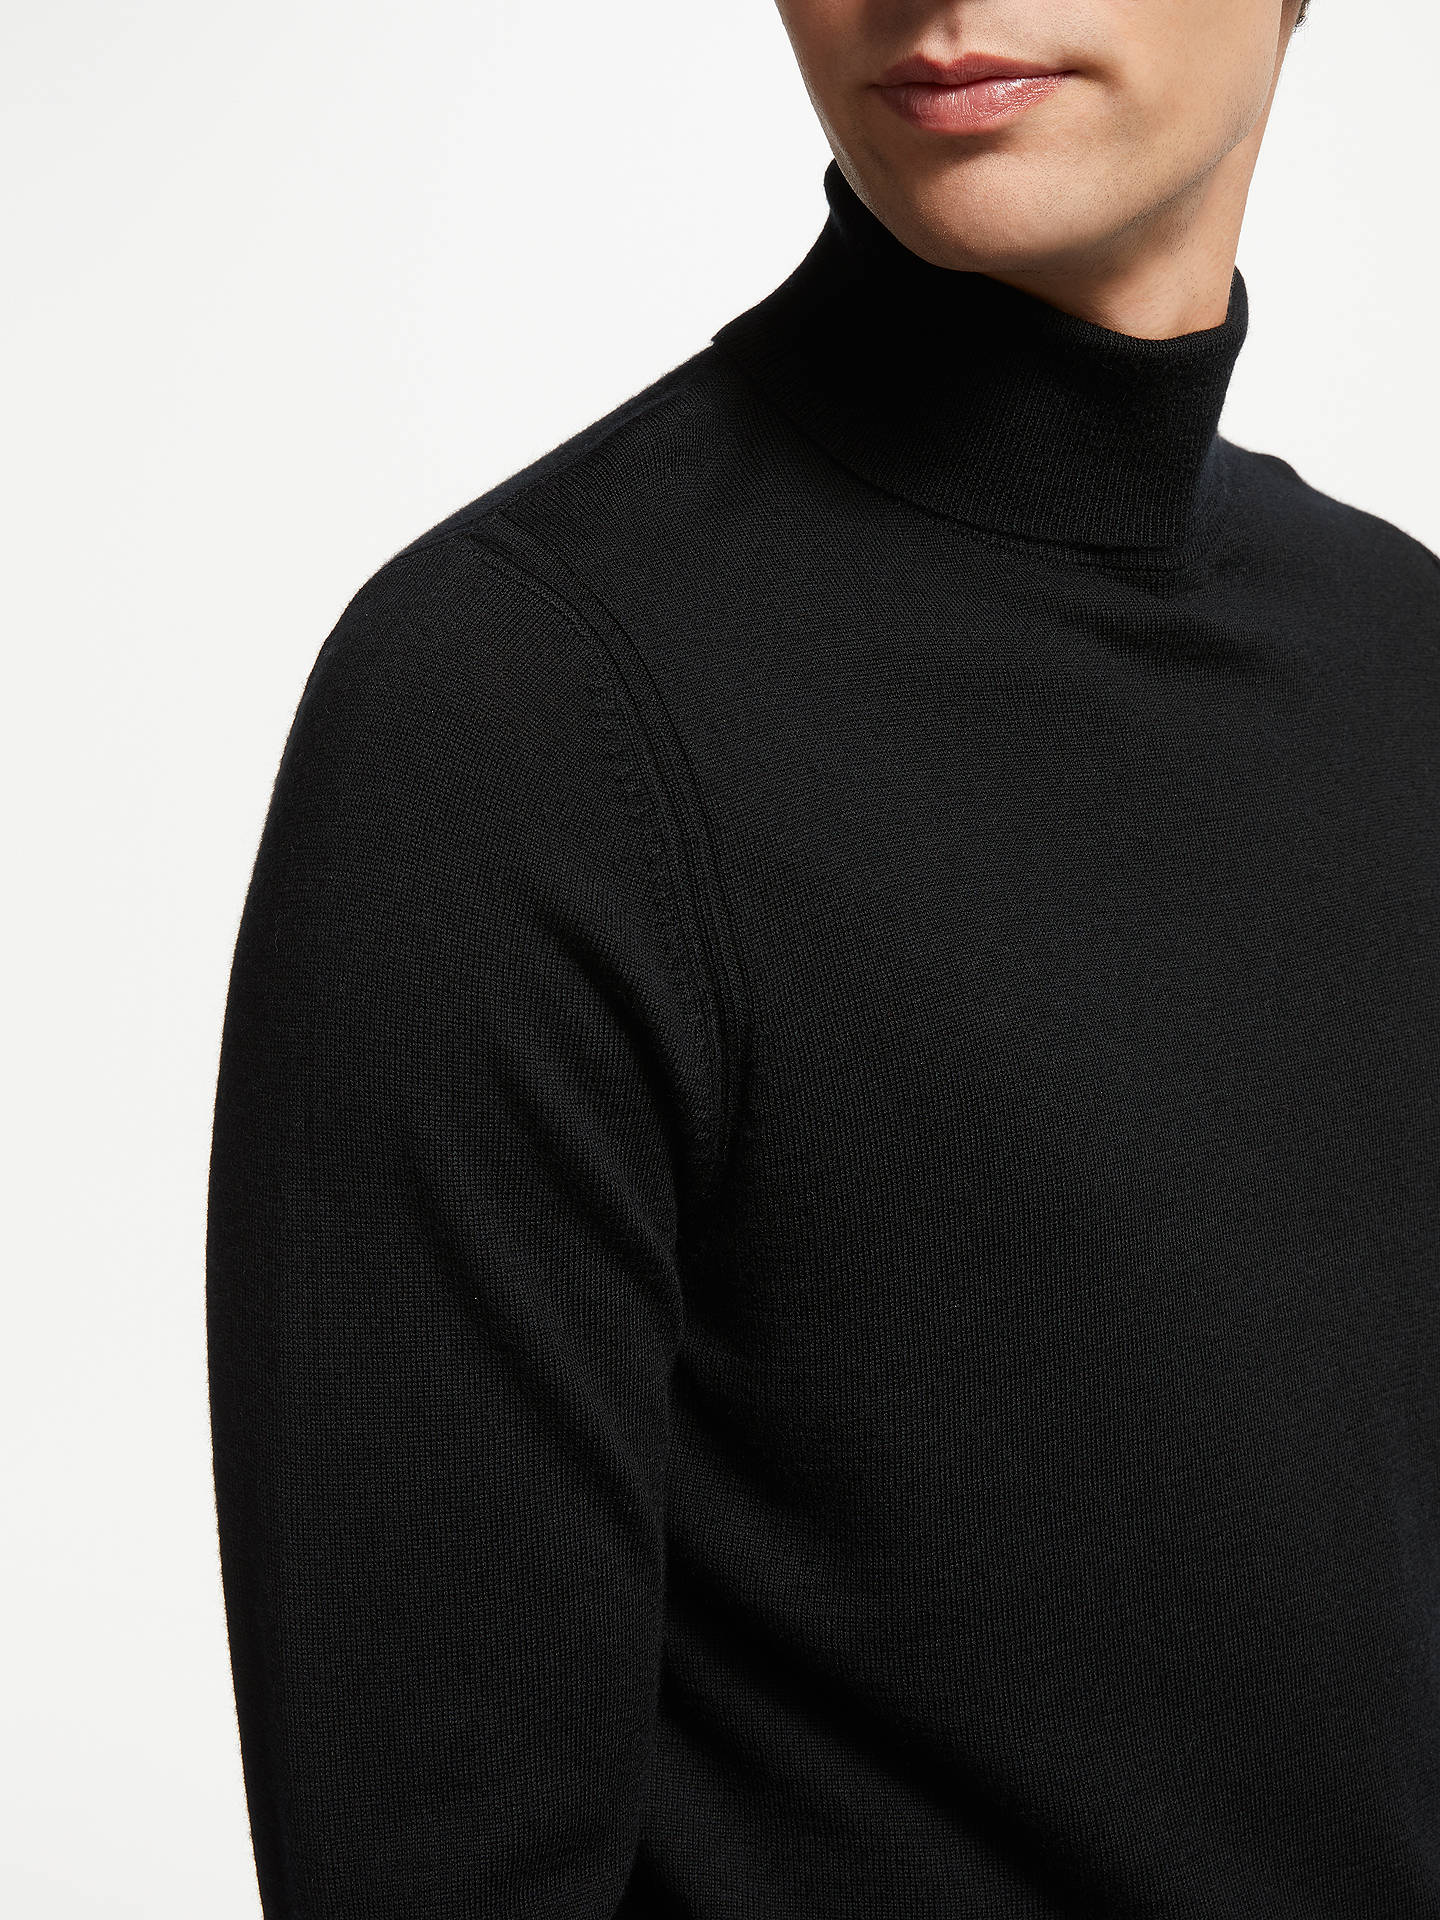 Buy John Lewis & Partners Extra Fine Merino Wool Roll Neck Jumper, Black, M Online at johnlewis.com